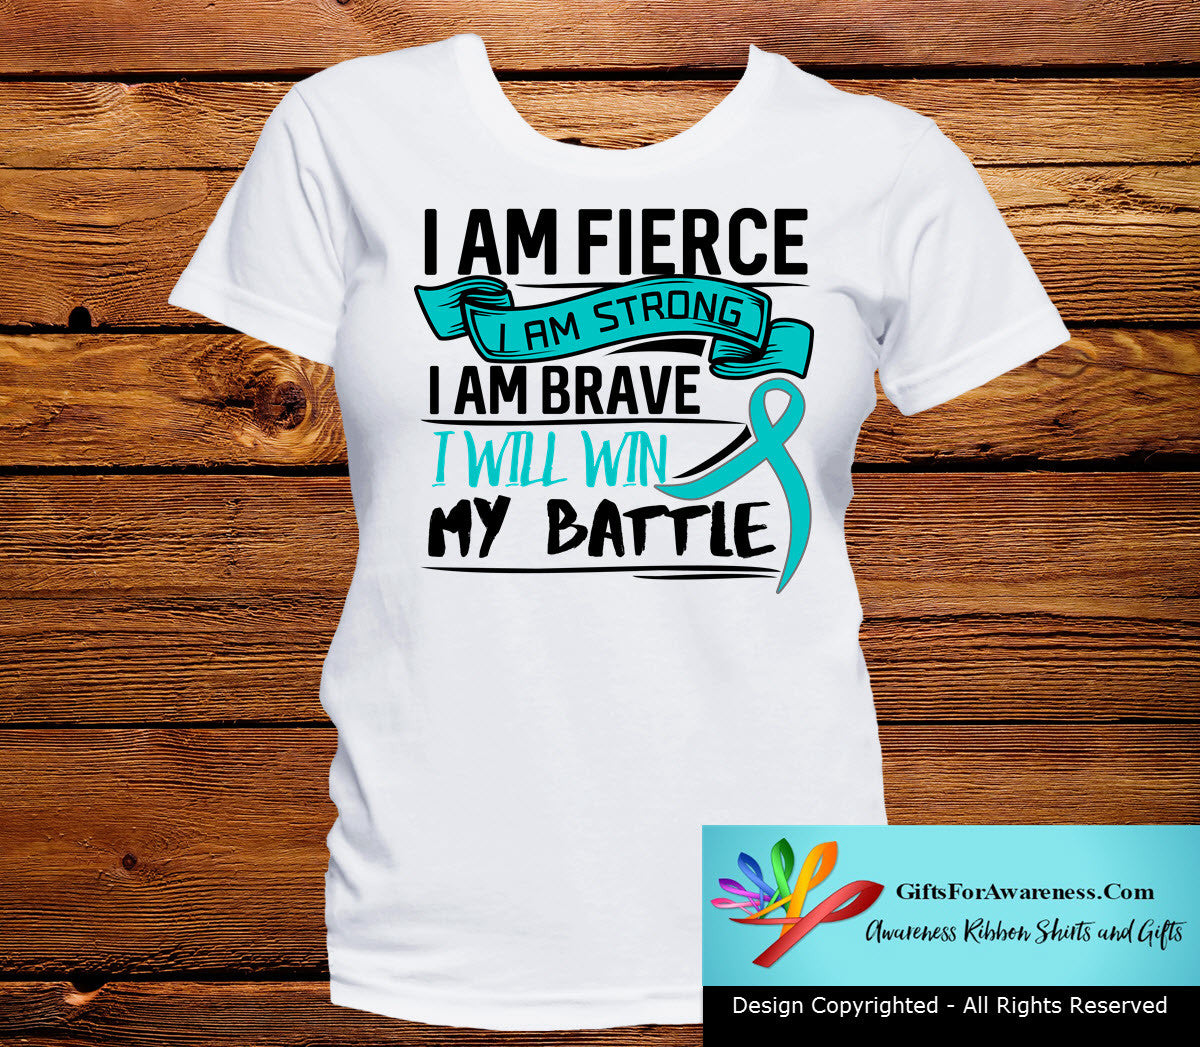 PKD I Am Fierce Strong and Brave Shirts - GiftsForAwareness